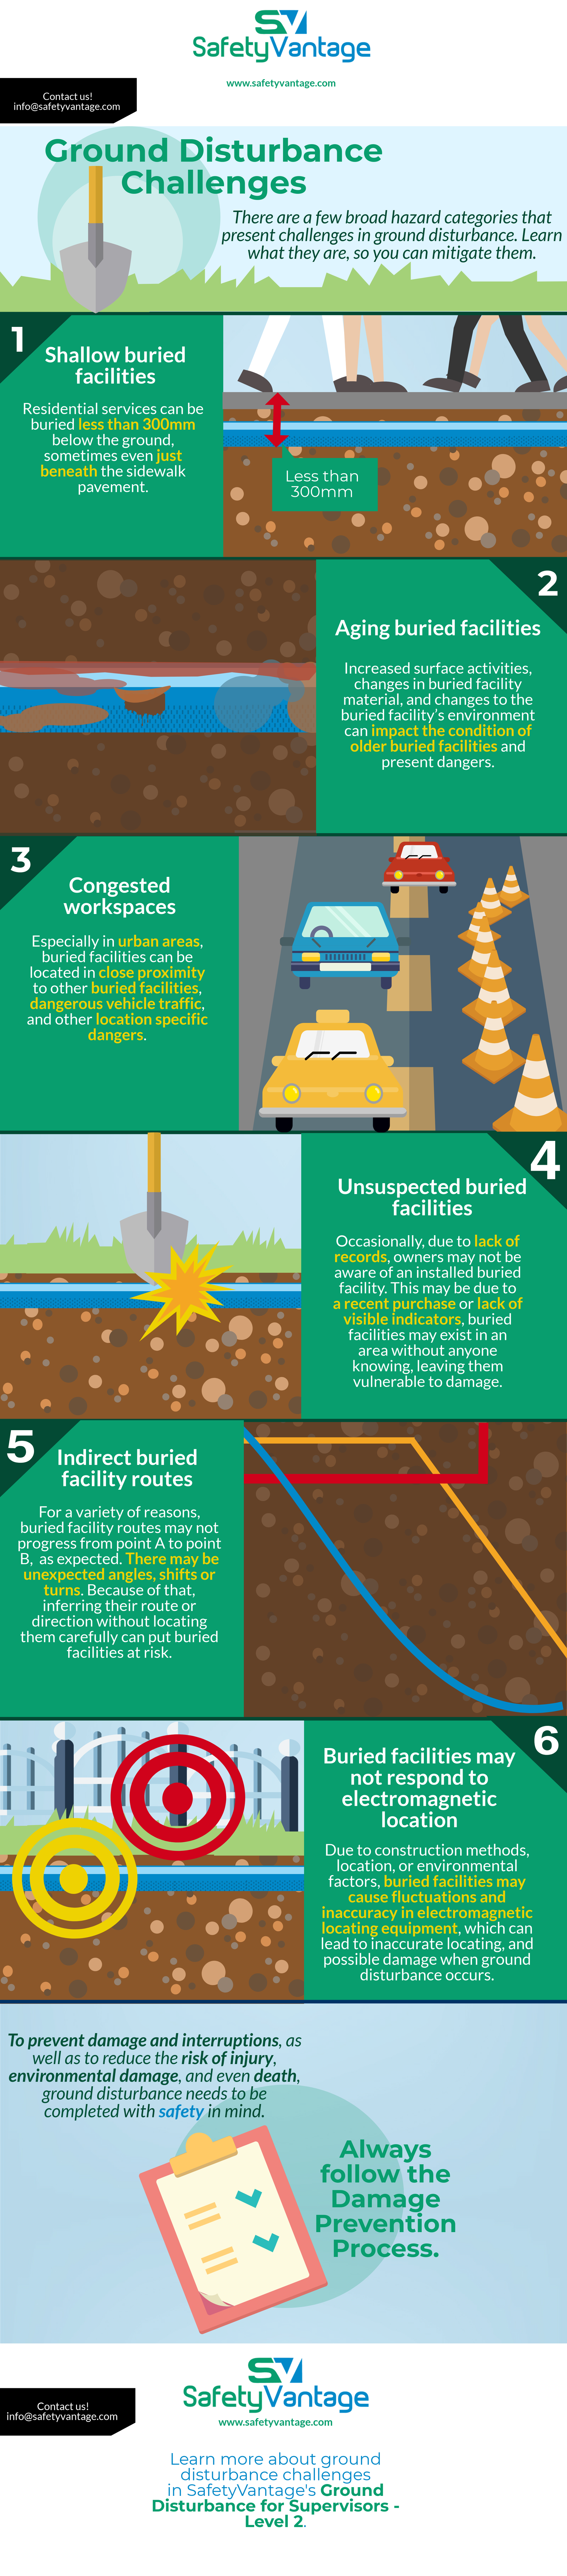 InfoGraphic - There are a few broad hazard categories that present challenges in ground disturbance. Learn what they are, so you can mitigate them.